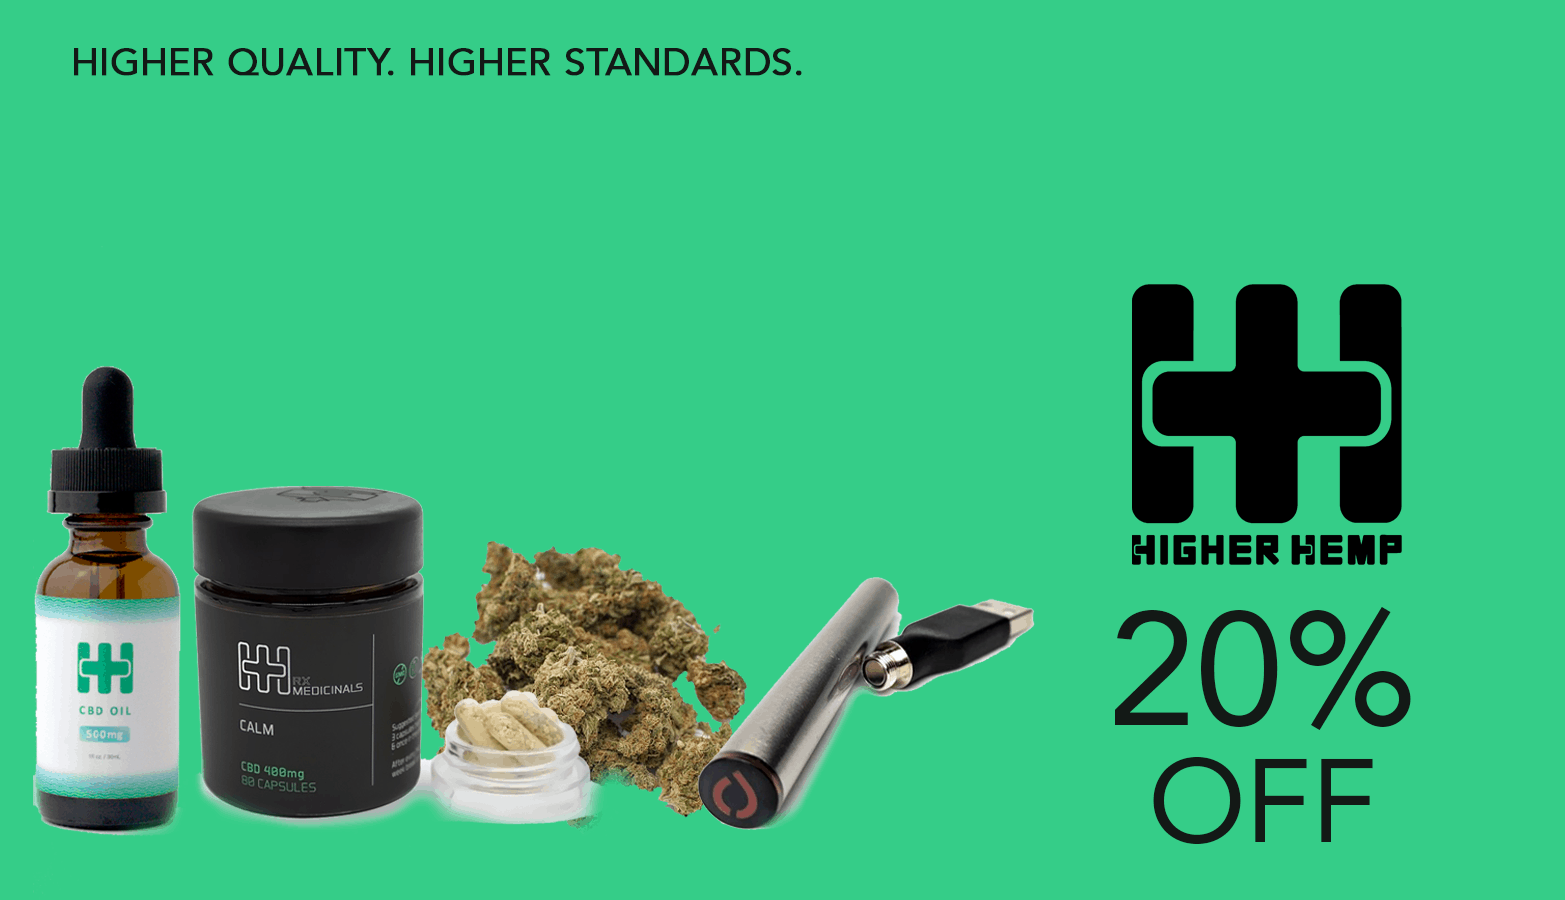 Higher Hemp CBD Coupon Code Offer Website